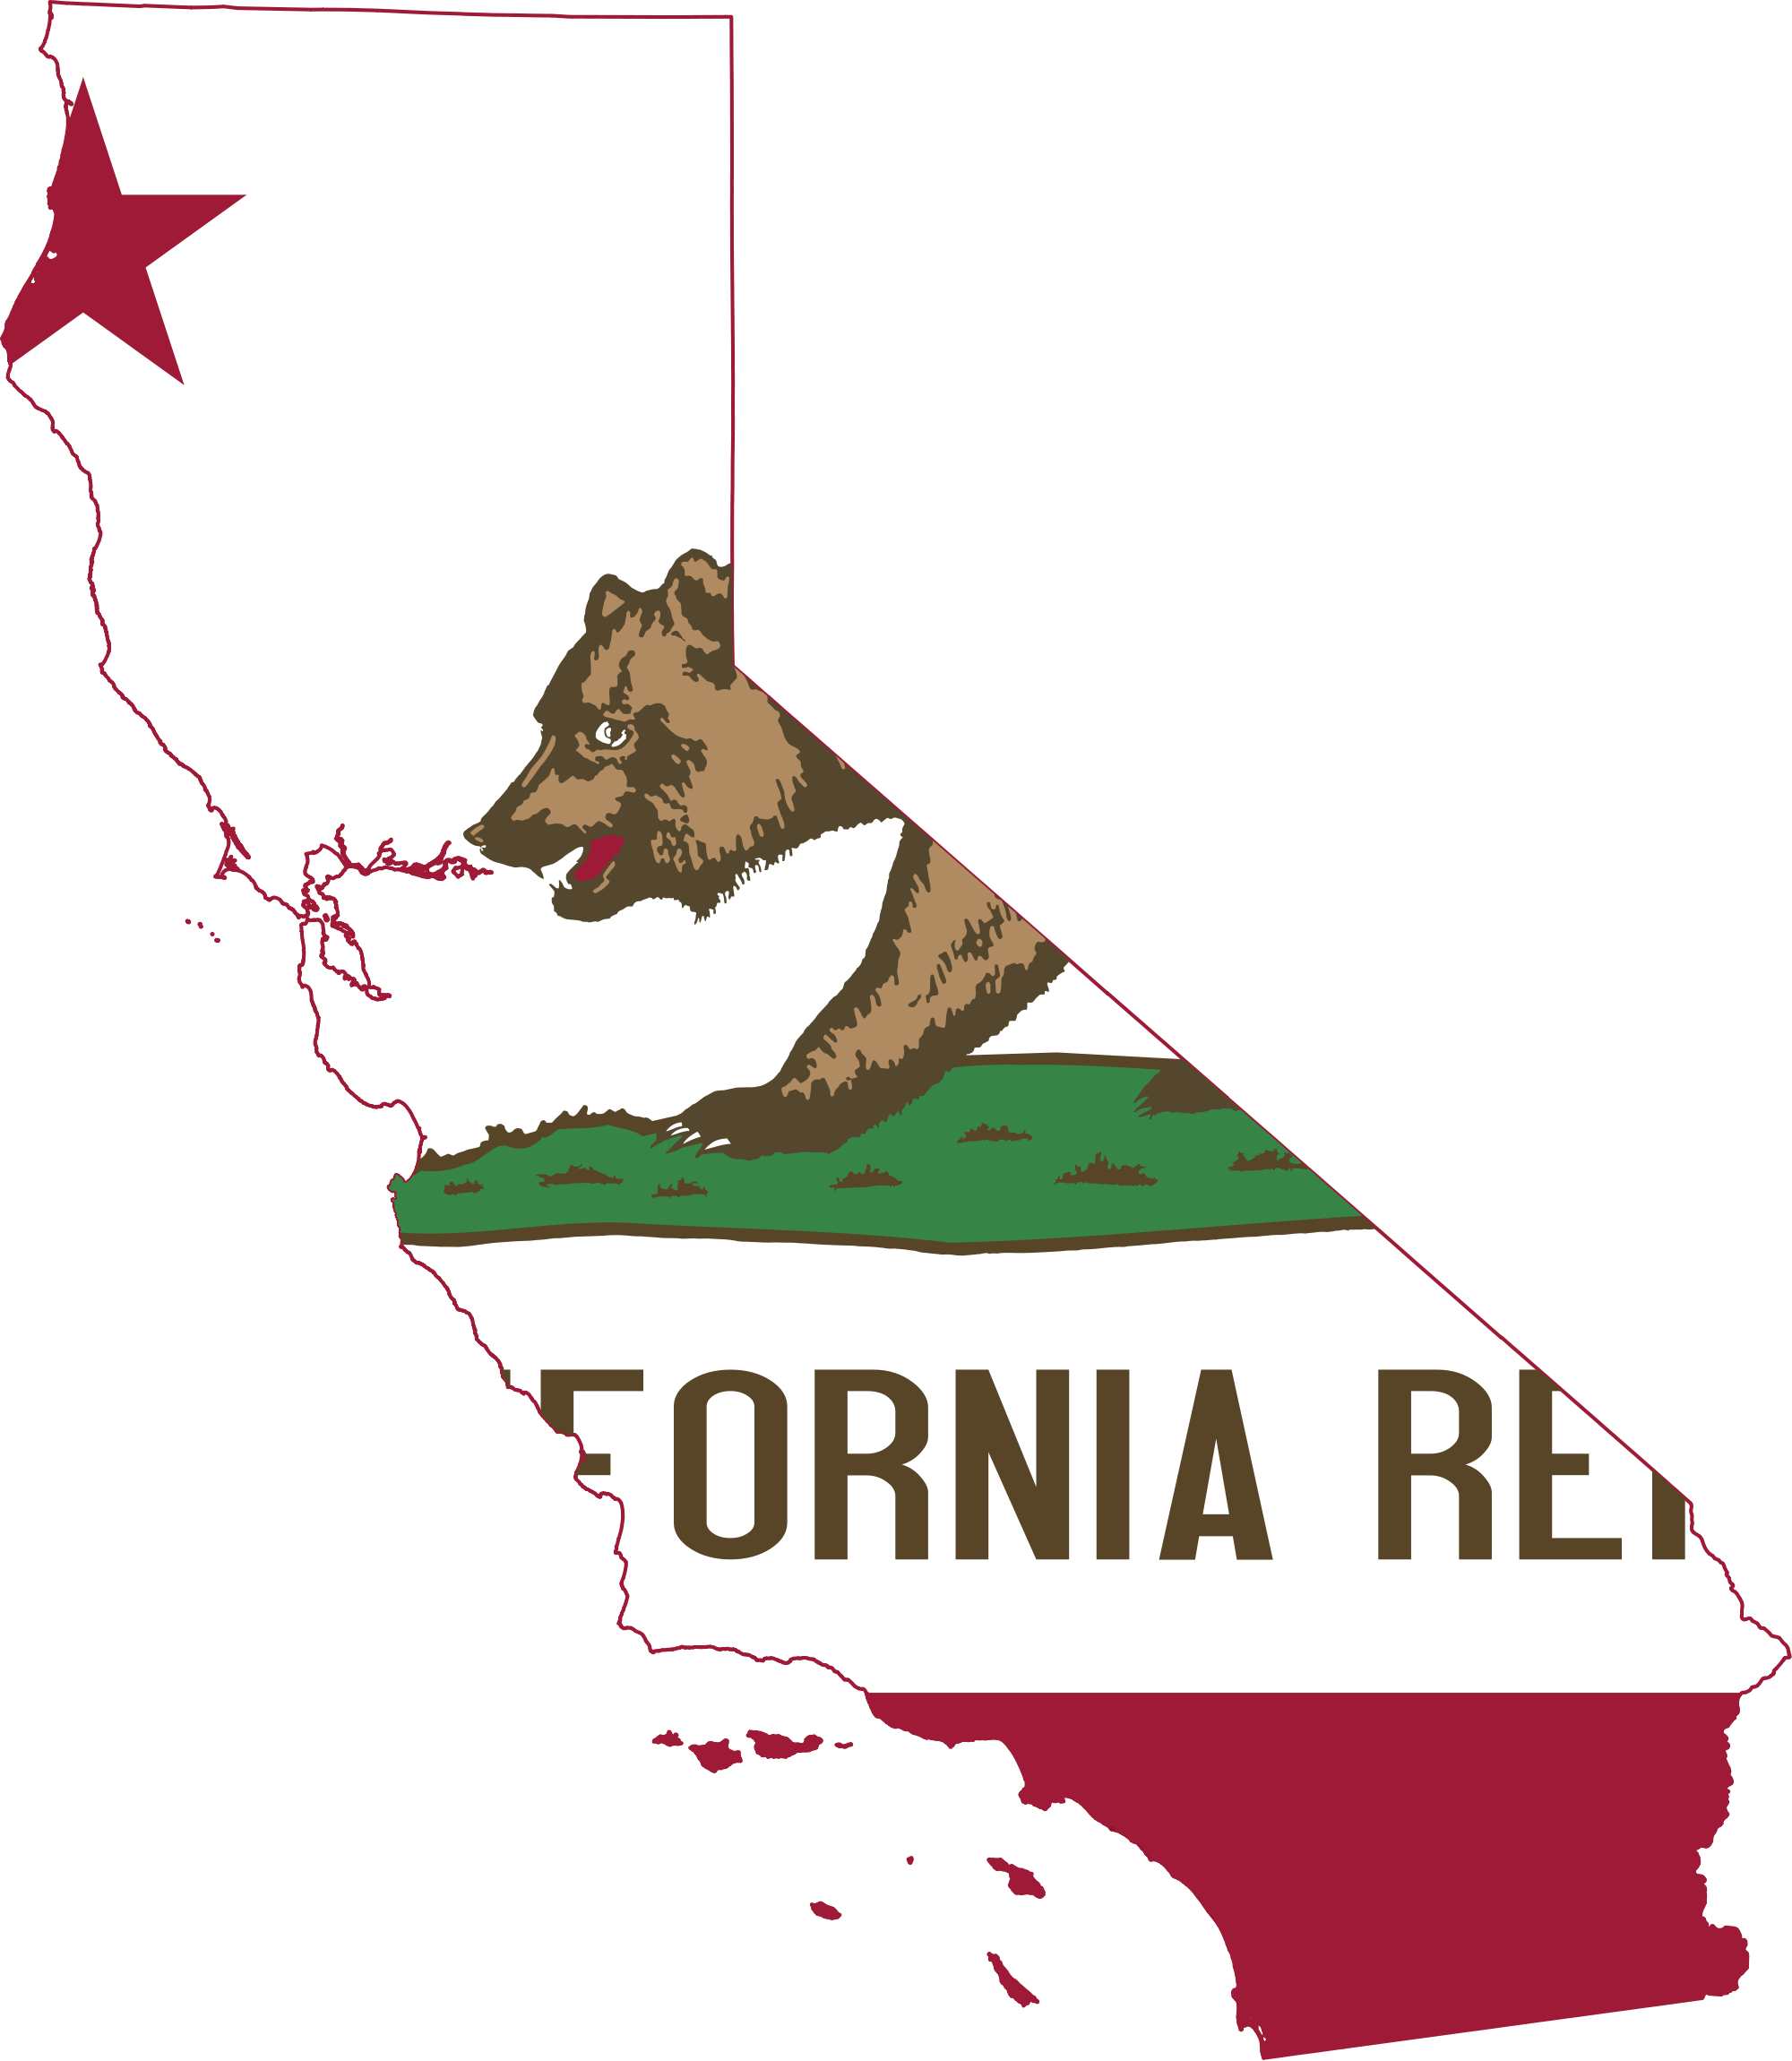 transparent california.com state background